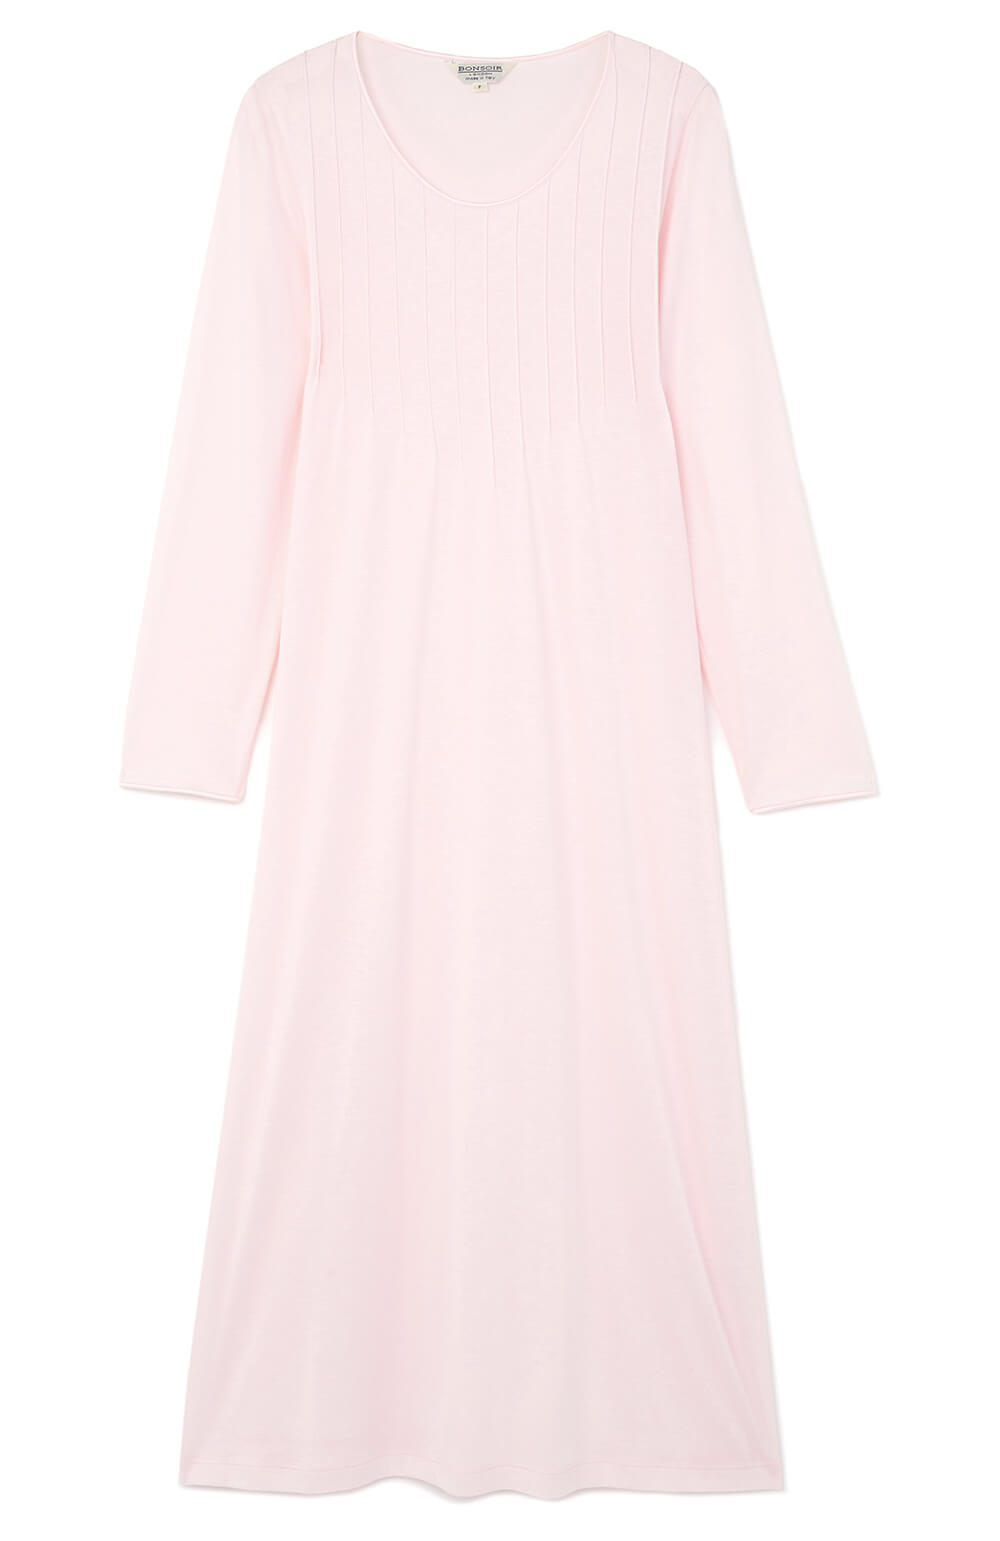 French Pleat Long Sleeve Nightdress (3241) - Soft Pink | Bonsoir of London